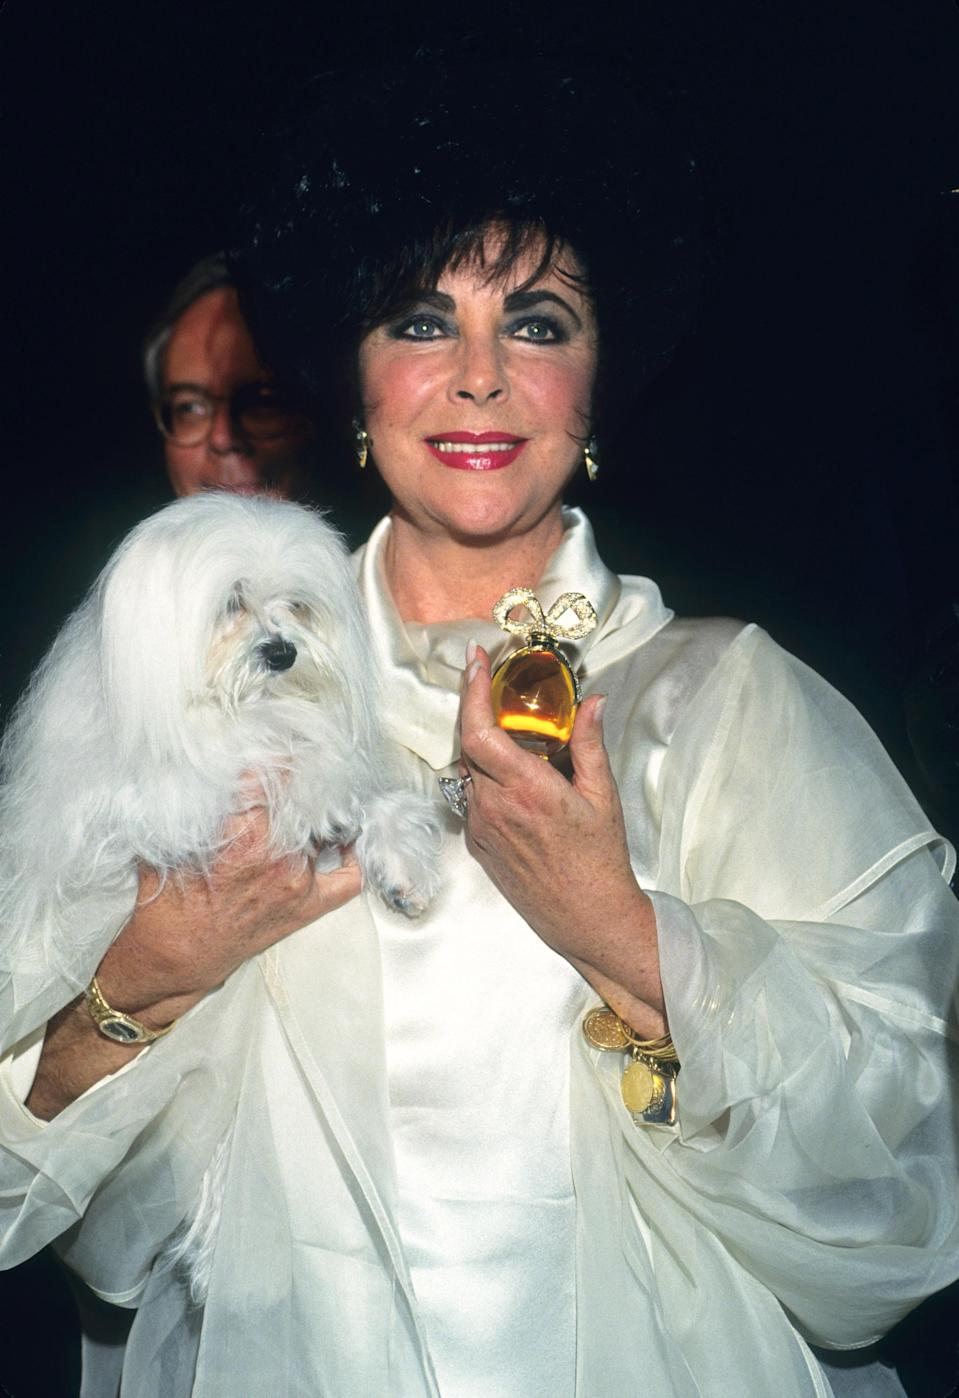 """<p>Elizabeth Taylor was one of the first celebrities to create their own scent. The legendary figure's 1991 White Diamond perfume went on to become the bestselling celebrity fragrance of all time. On her death, the <i>Guardian</i> estimated that the majority of her <a href=""""https://www.theguardian.com/film/2011/mar/29/elizabeth-taylor-worth-1bn-death"""" rel=""""nofollow noopener"""" target=""""_blank"""" data-ylk=""""slk:billion dollar estate"""" class=""""link rapid-noclick-resp"""">billion dollar estate</a> (£750 million) was down to fragrance sales.<br><i>[Photo: Getty]</i> </p>"""